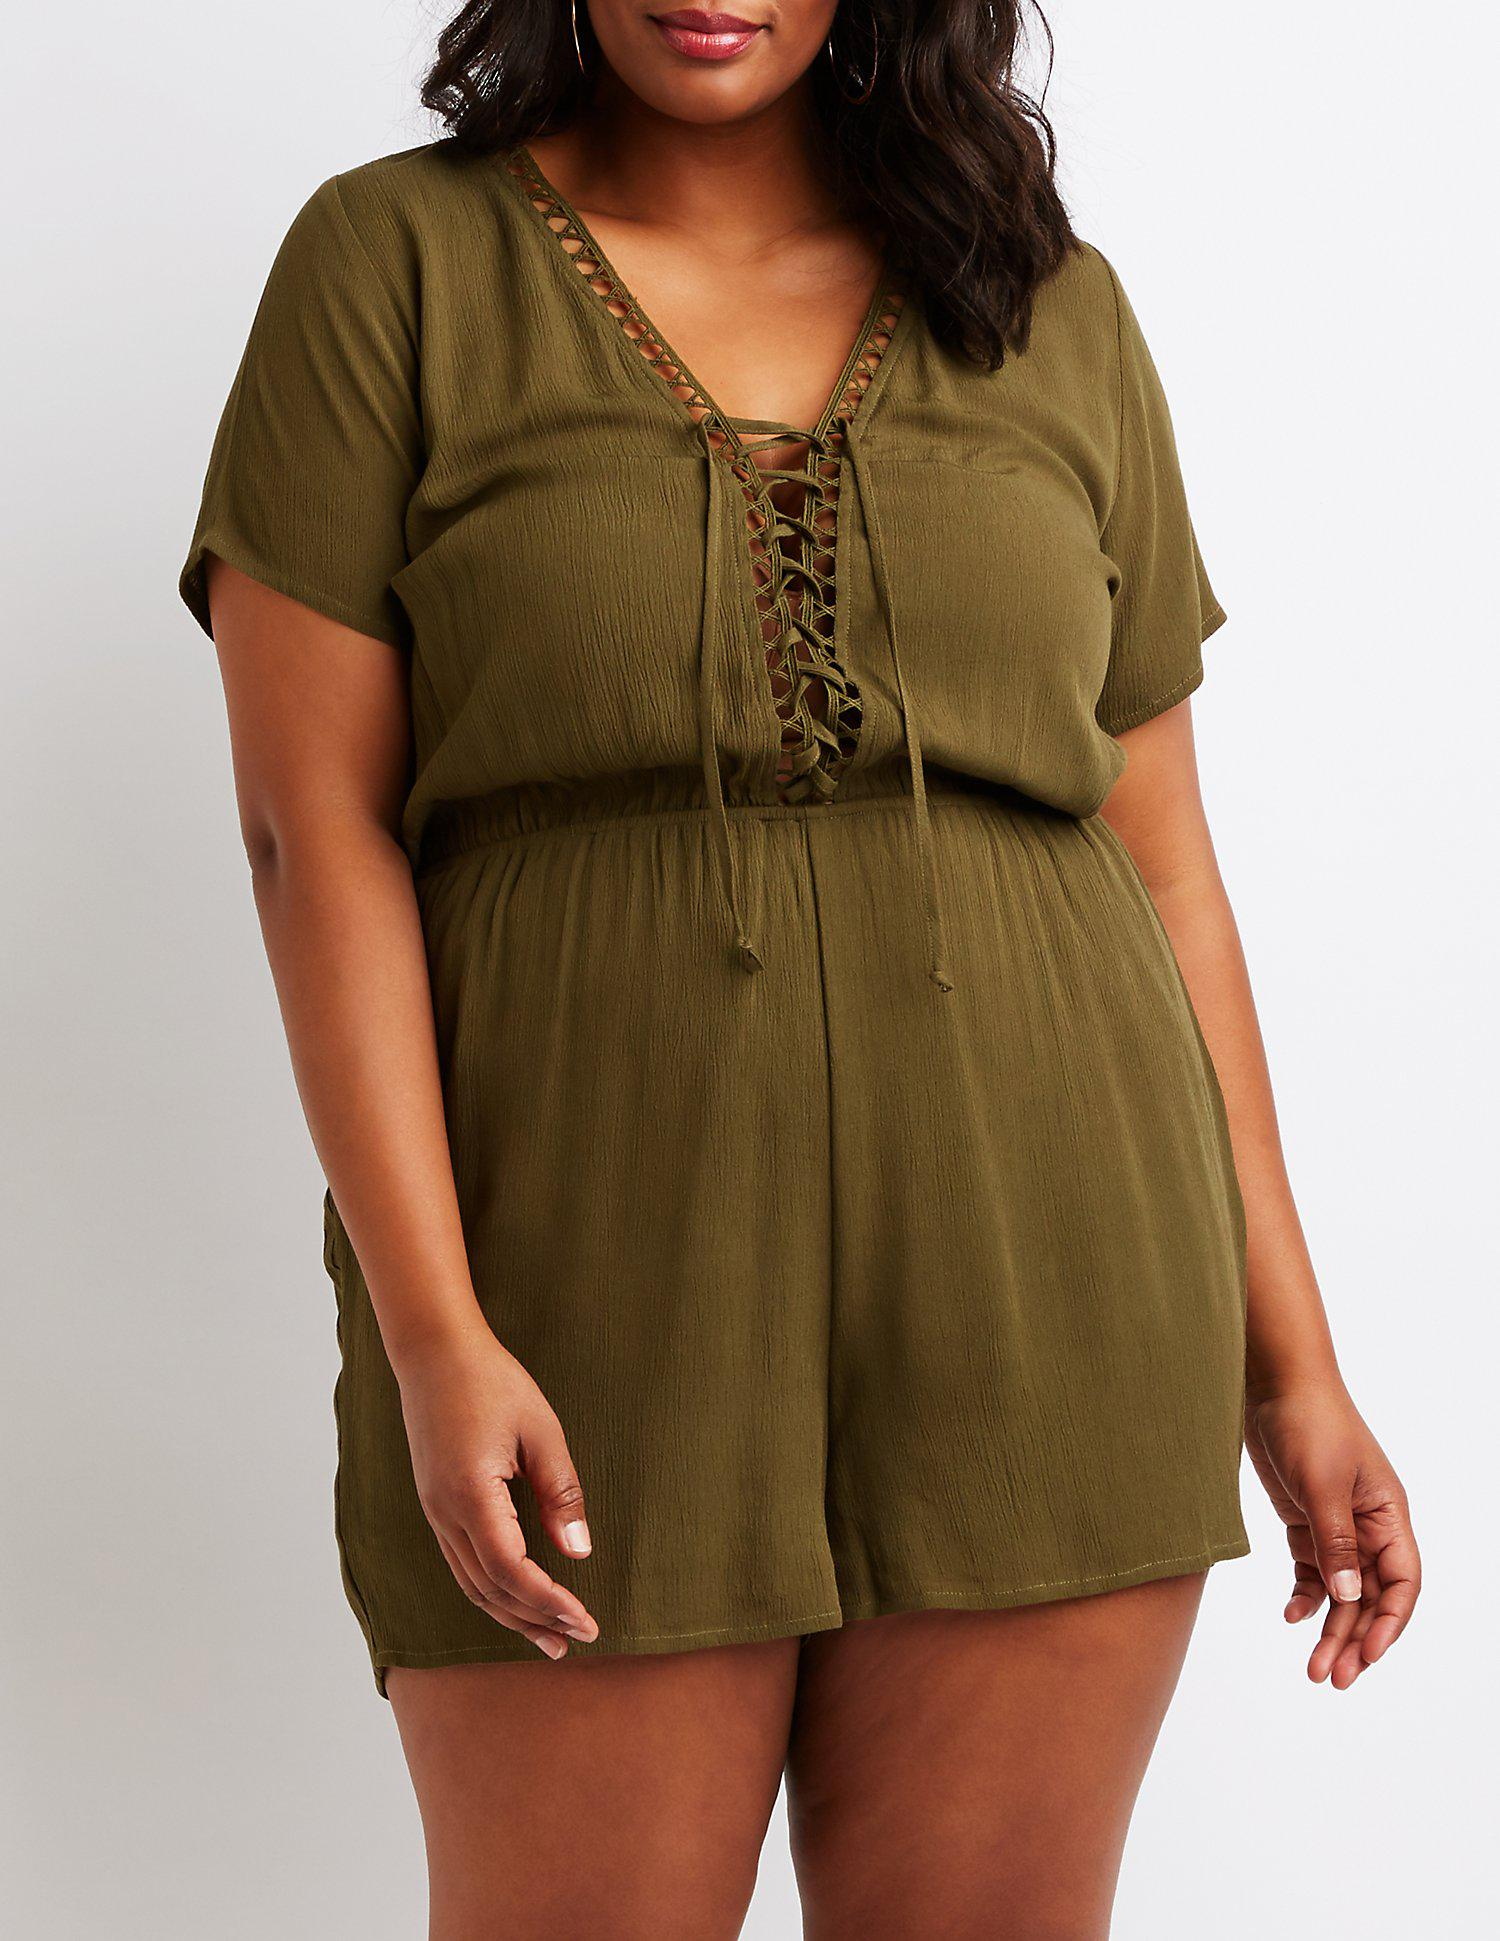 dd6871a5a94f Lyst - Charlotte Russe Plus Size Crochet Lace Up Romper in Green